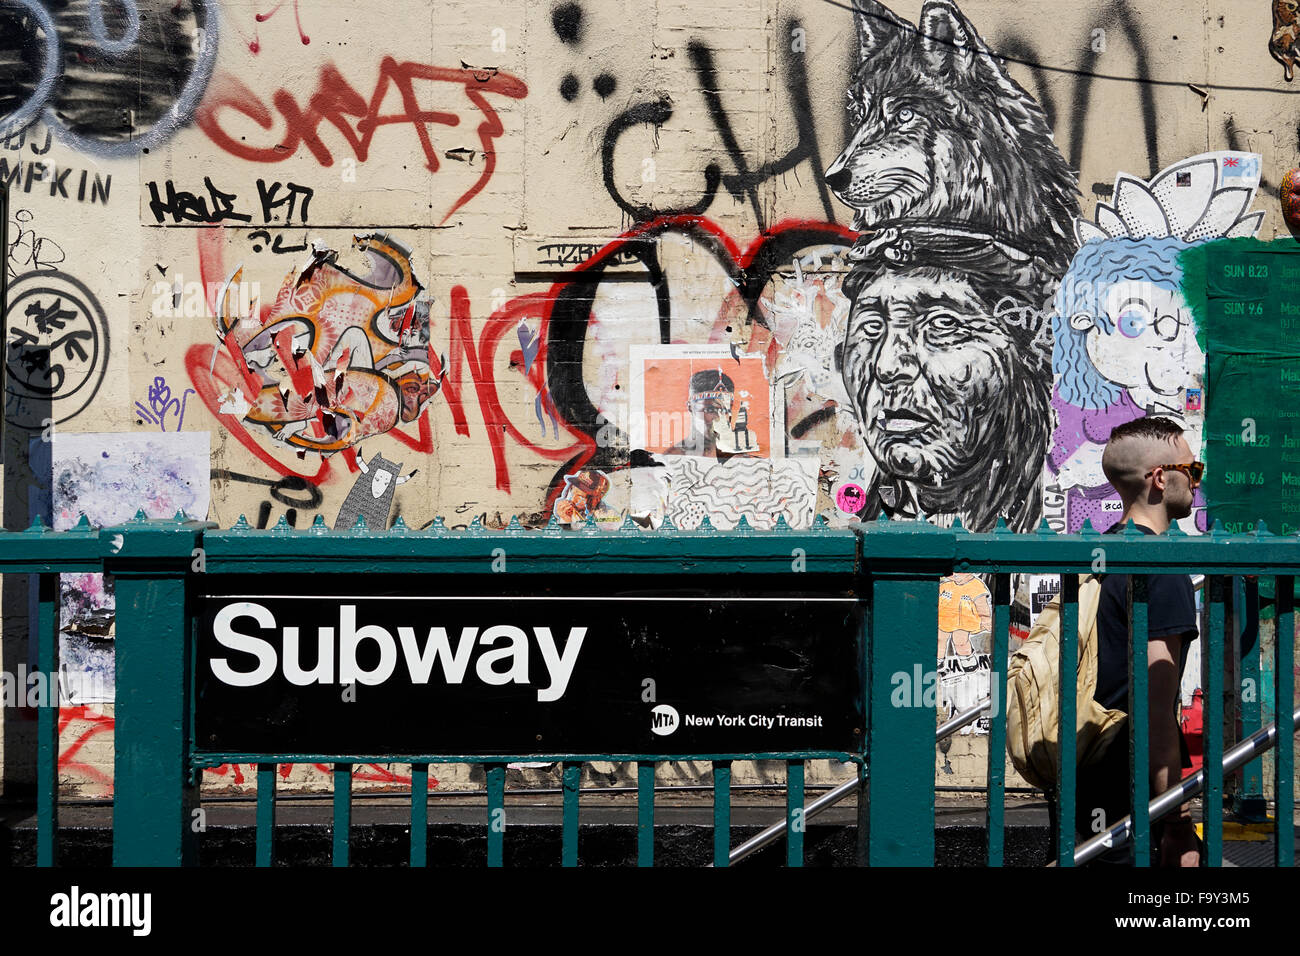 New York City Subway Station With Graffiti In The Background And Subway Rider Walking Up The Stairs Usa